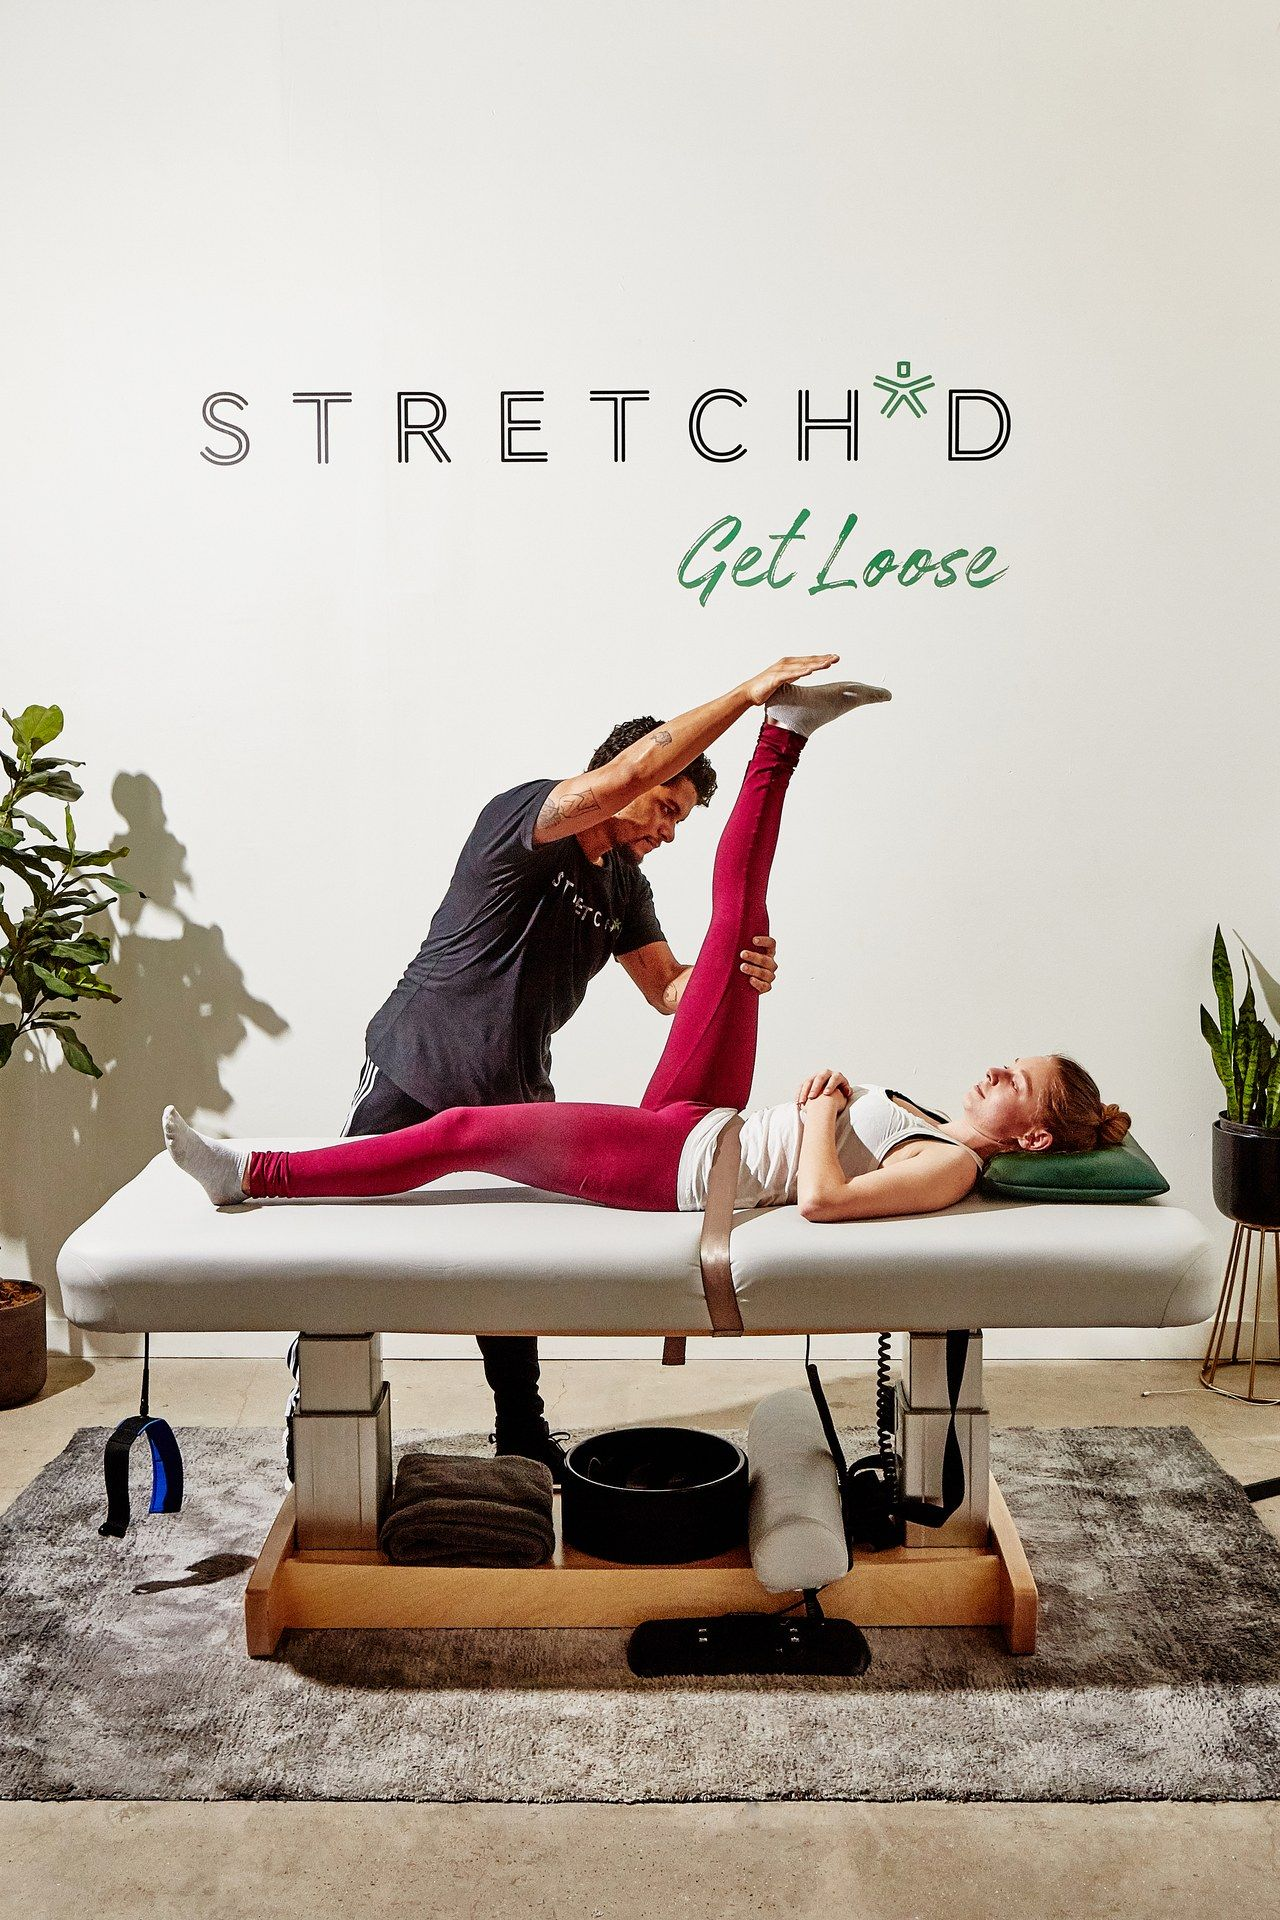 I Dragged My Stiff Body to Stretch*d, the Assisted Stretching Studio in NYC